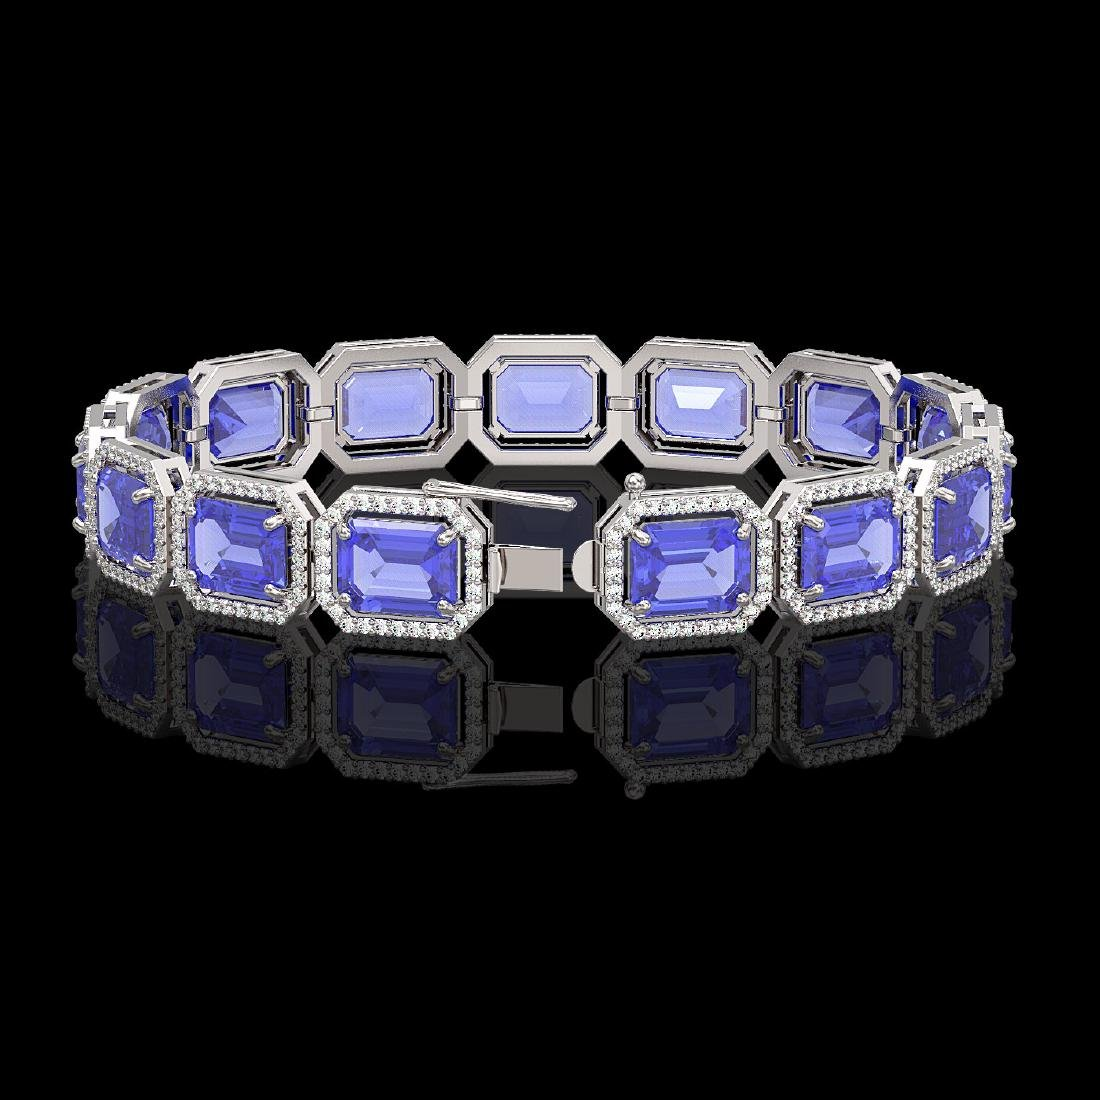 36.37 CTW Tanzanite & Diamond Halo Bracelet 10K White - 2